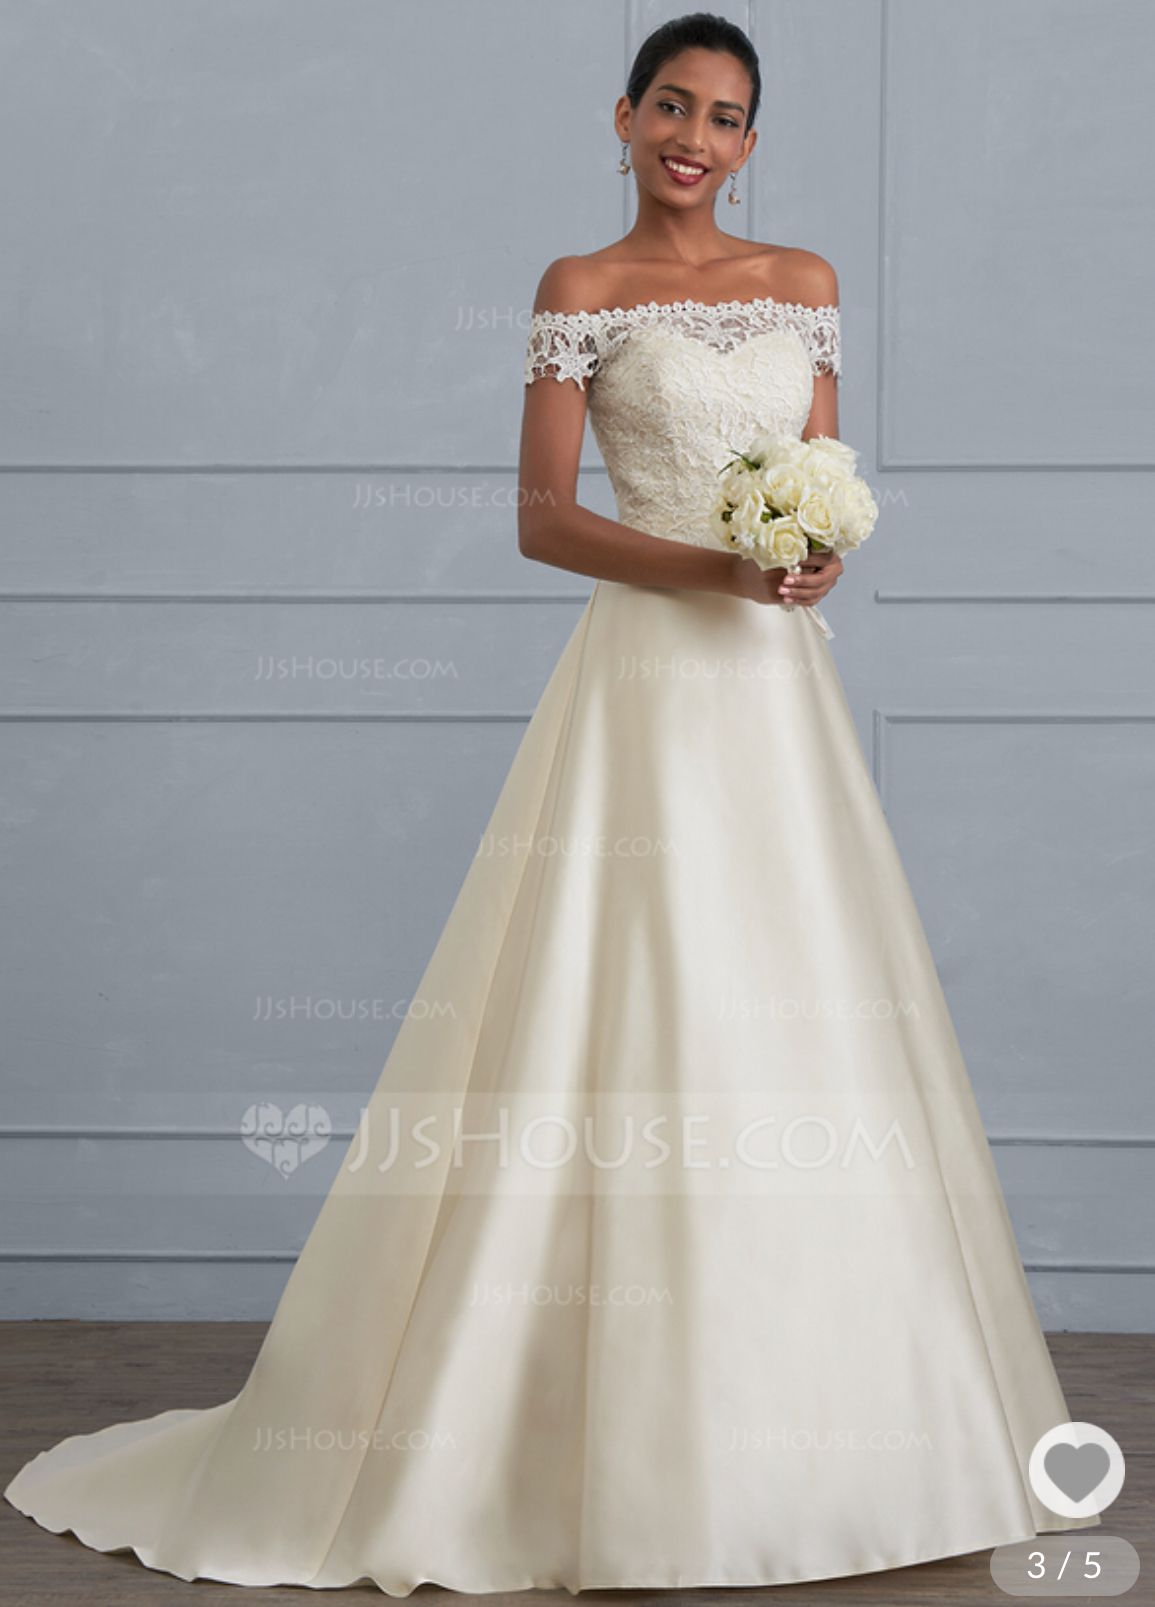 Strapless fitted lace wedding dresses  Pin by Keyanna Davis on Real love   Pinterest  Wedding dresses